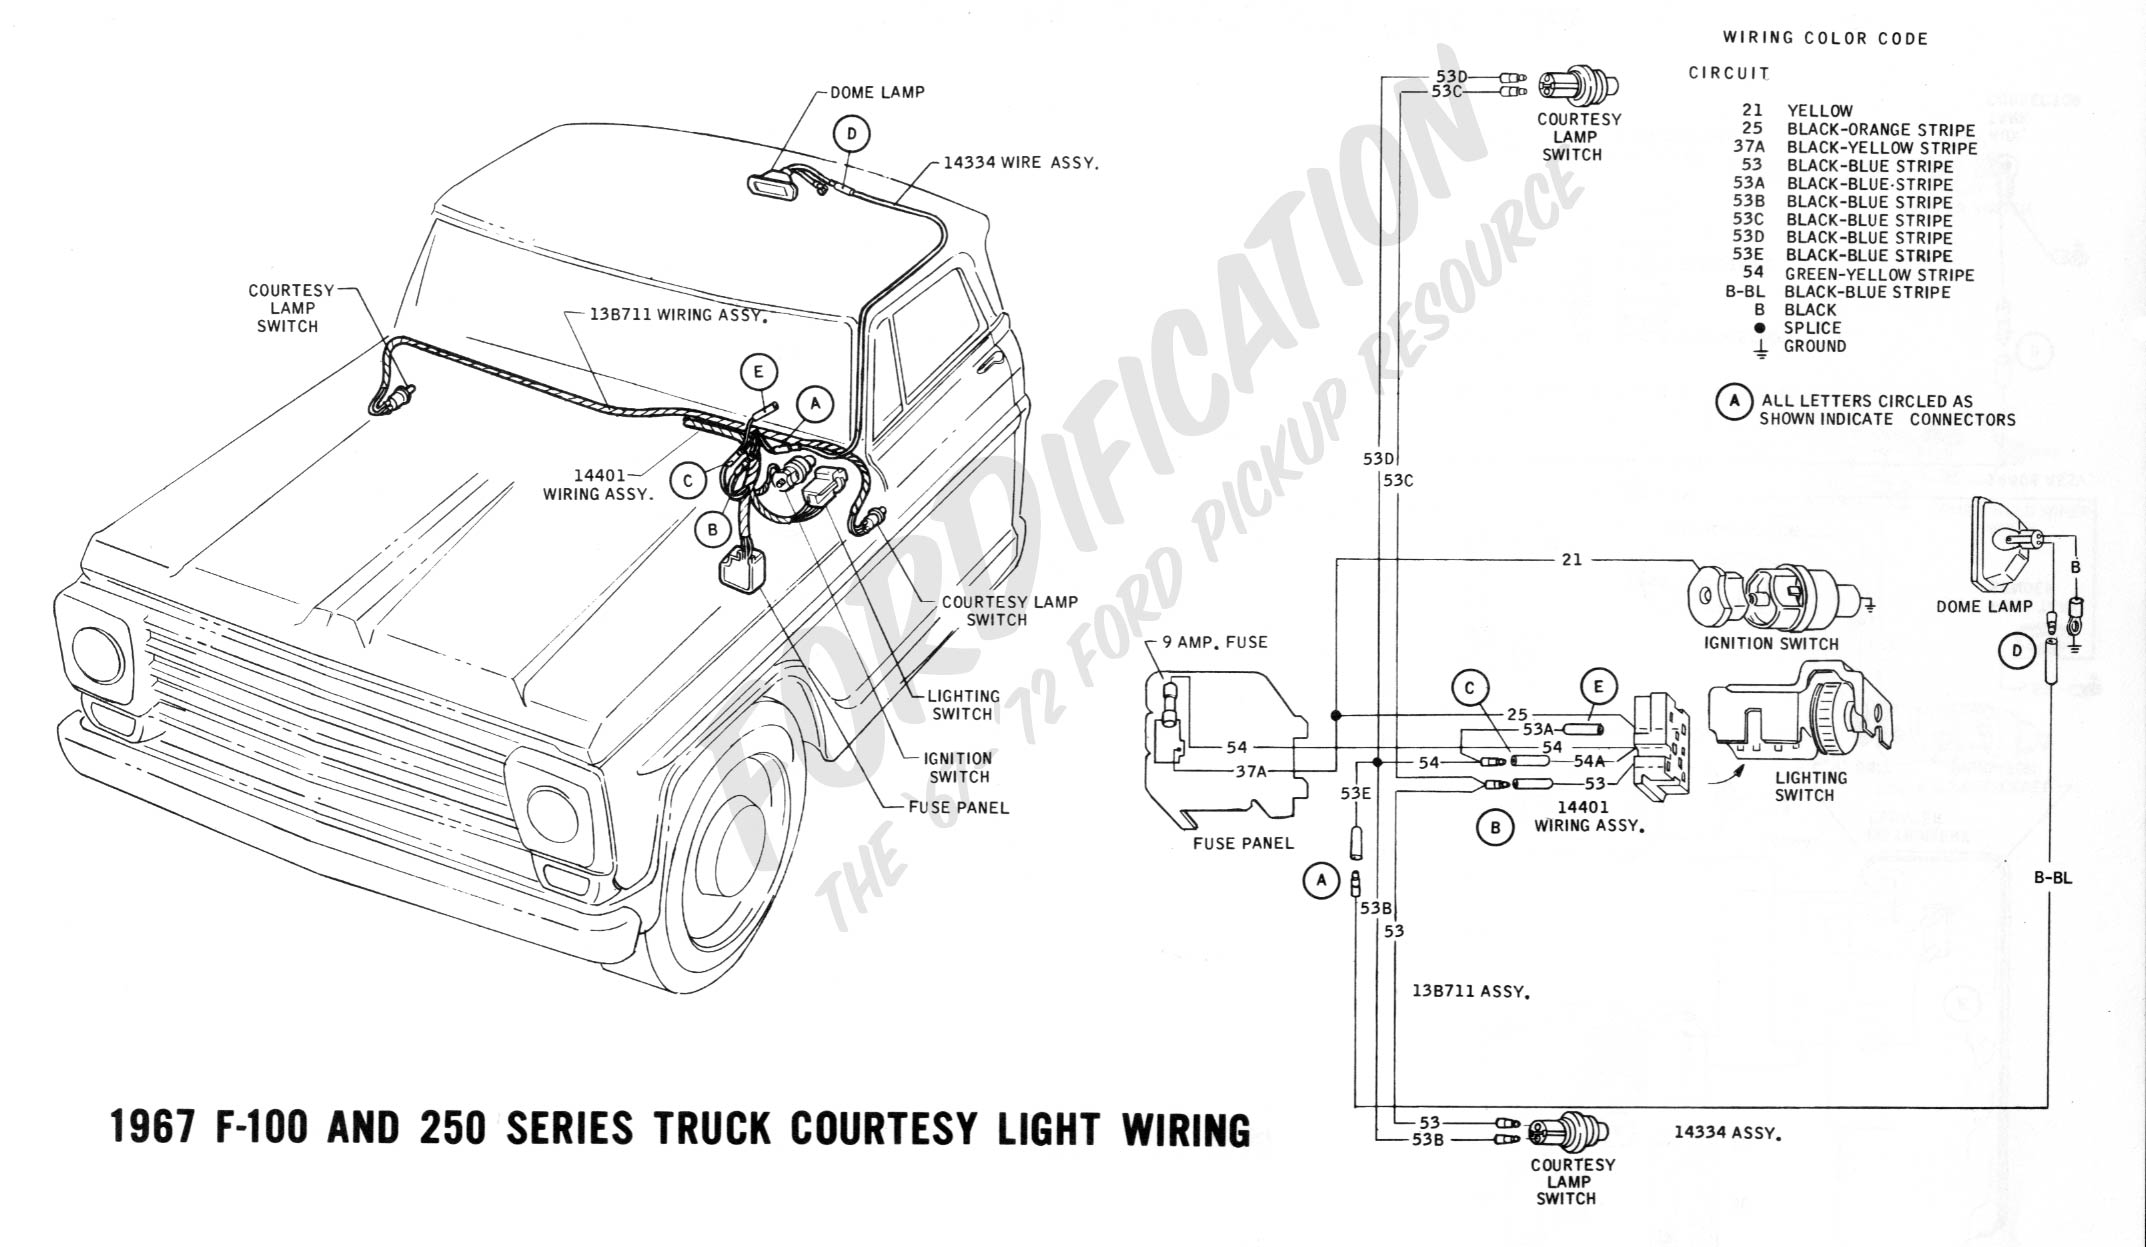 [SCHEMATICS_4UK]  Ford Truck Technical Drawings and Schematics - Section H - Wiring Diagrams | Ford Ignition Switch Wiring |  | FORDification.com